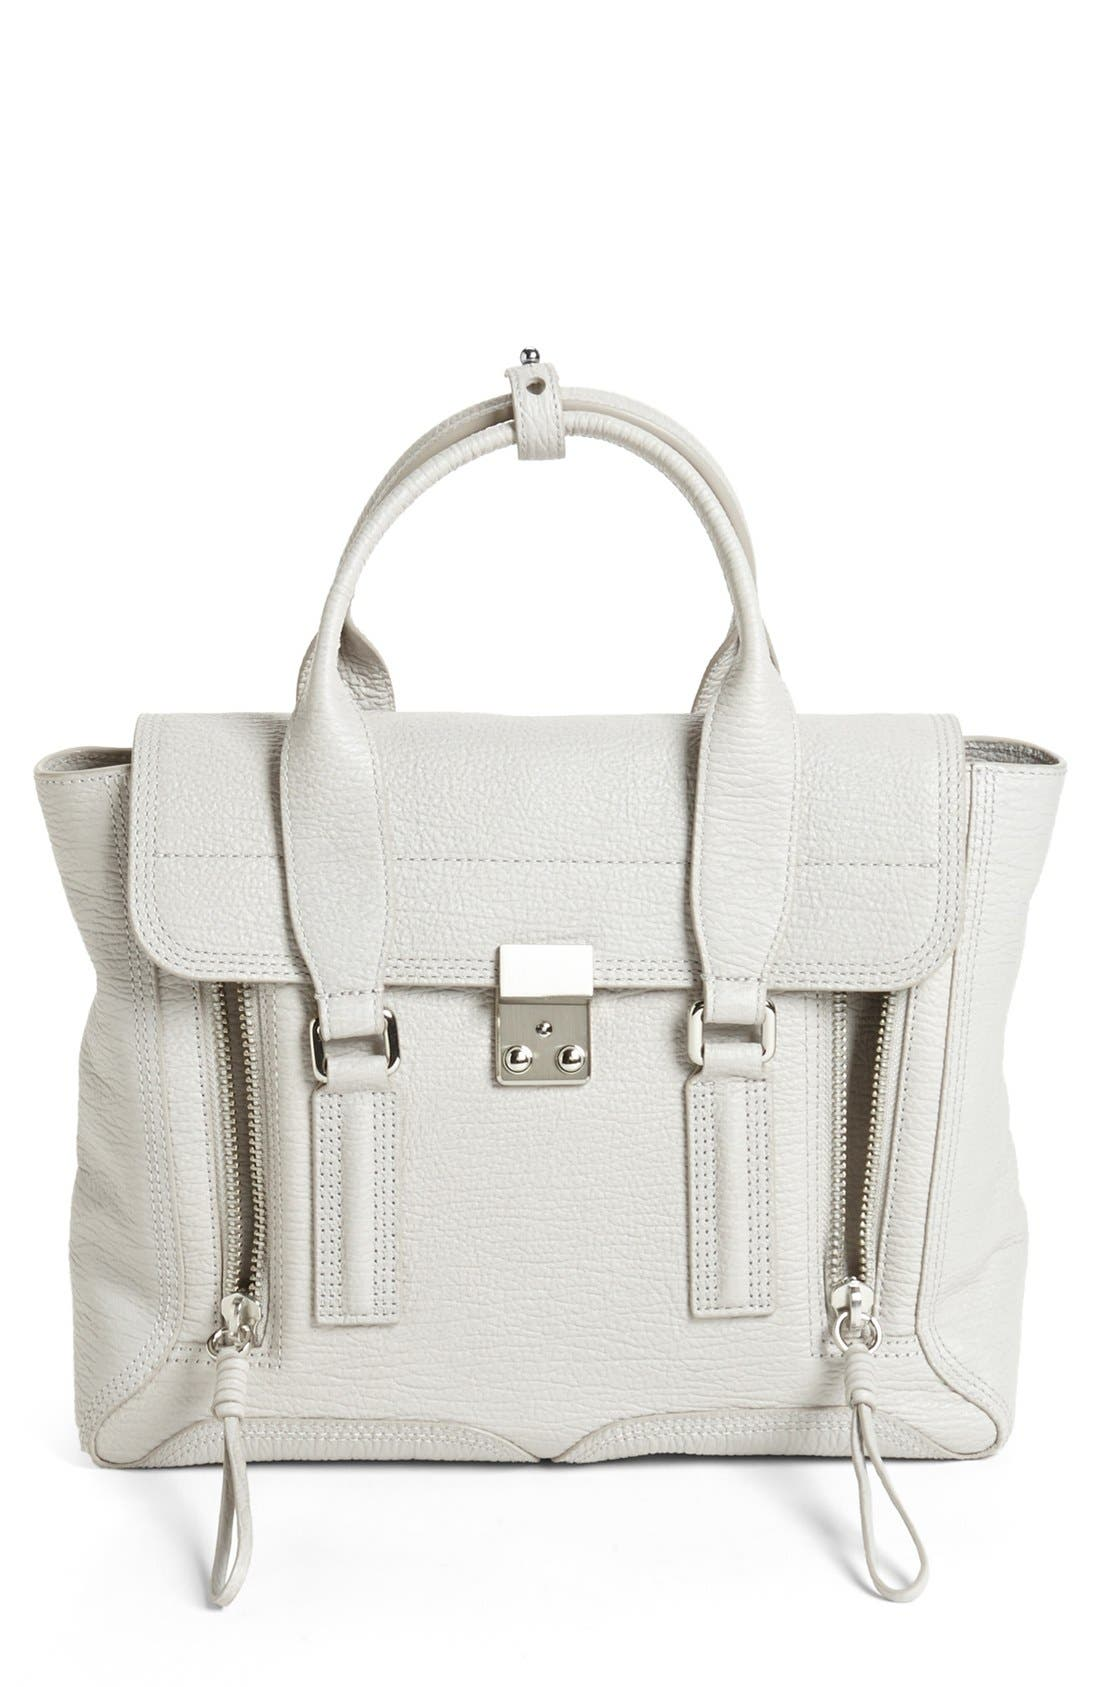 Main Image - 3.1 Phillip Lim 'Medium Pashli' Shark Embossed Leather Satchel